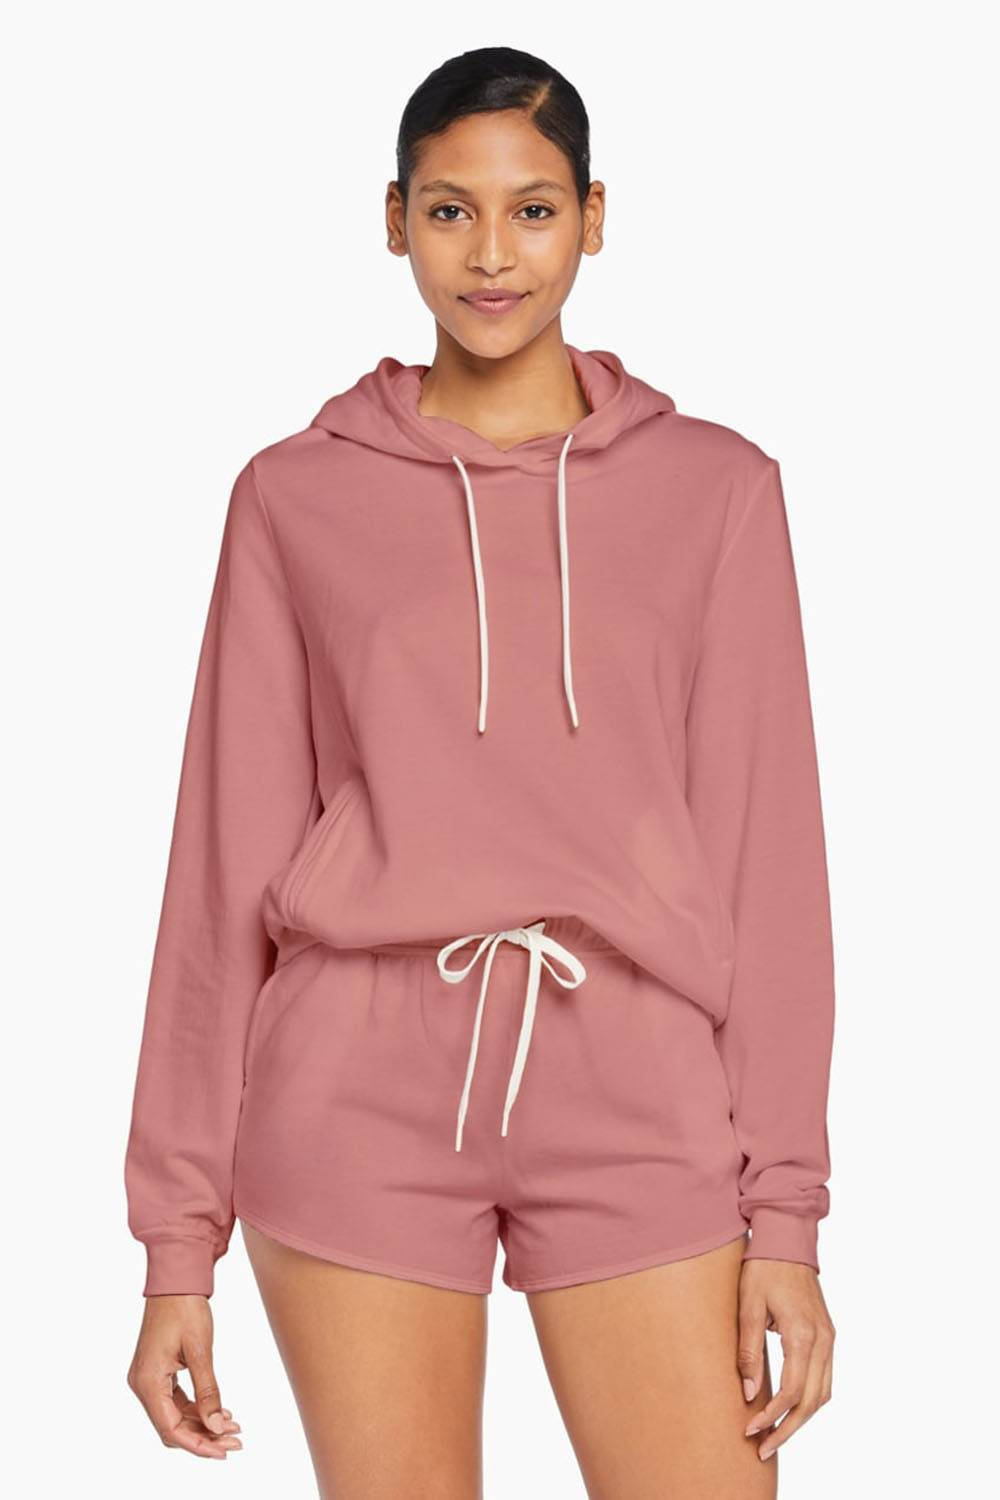 vitamin a hoodie made in usa